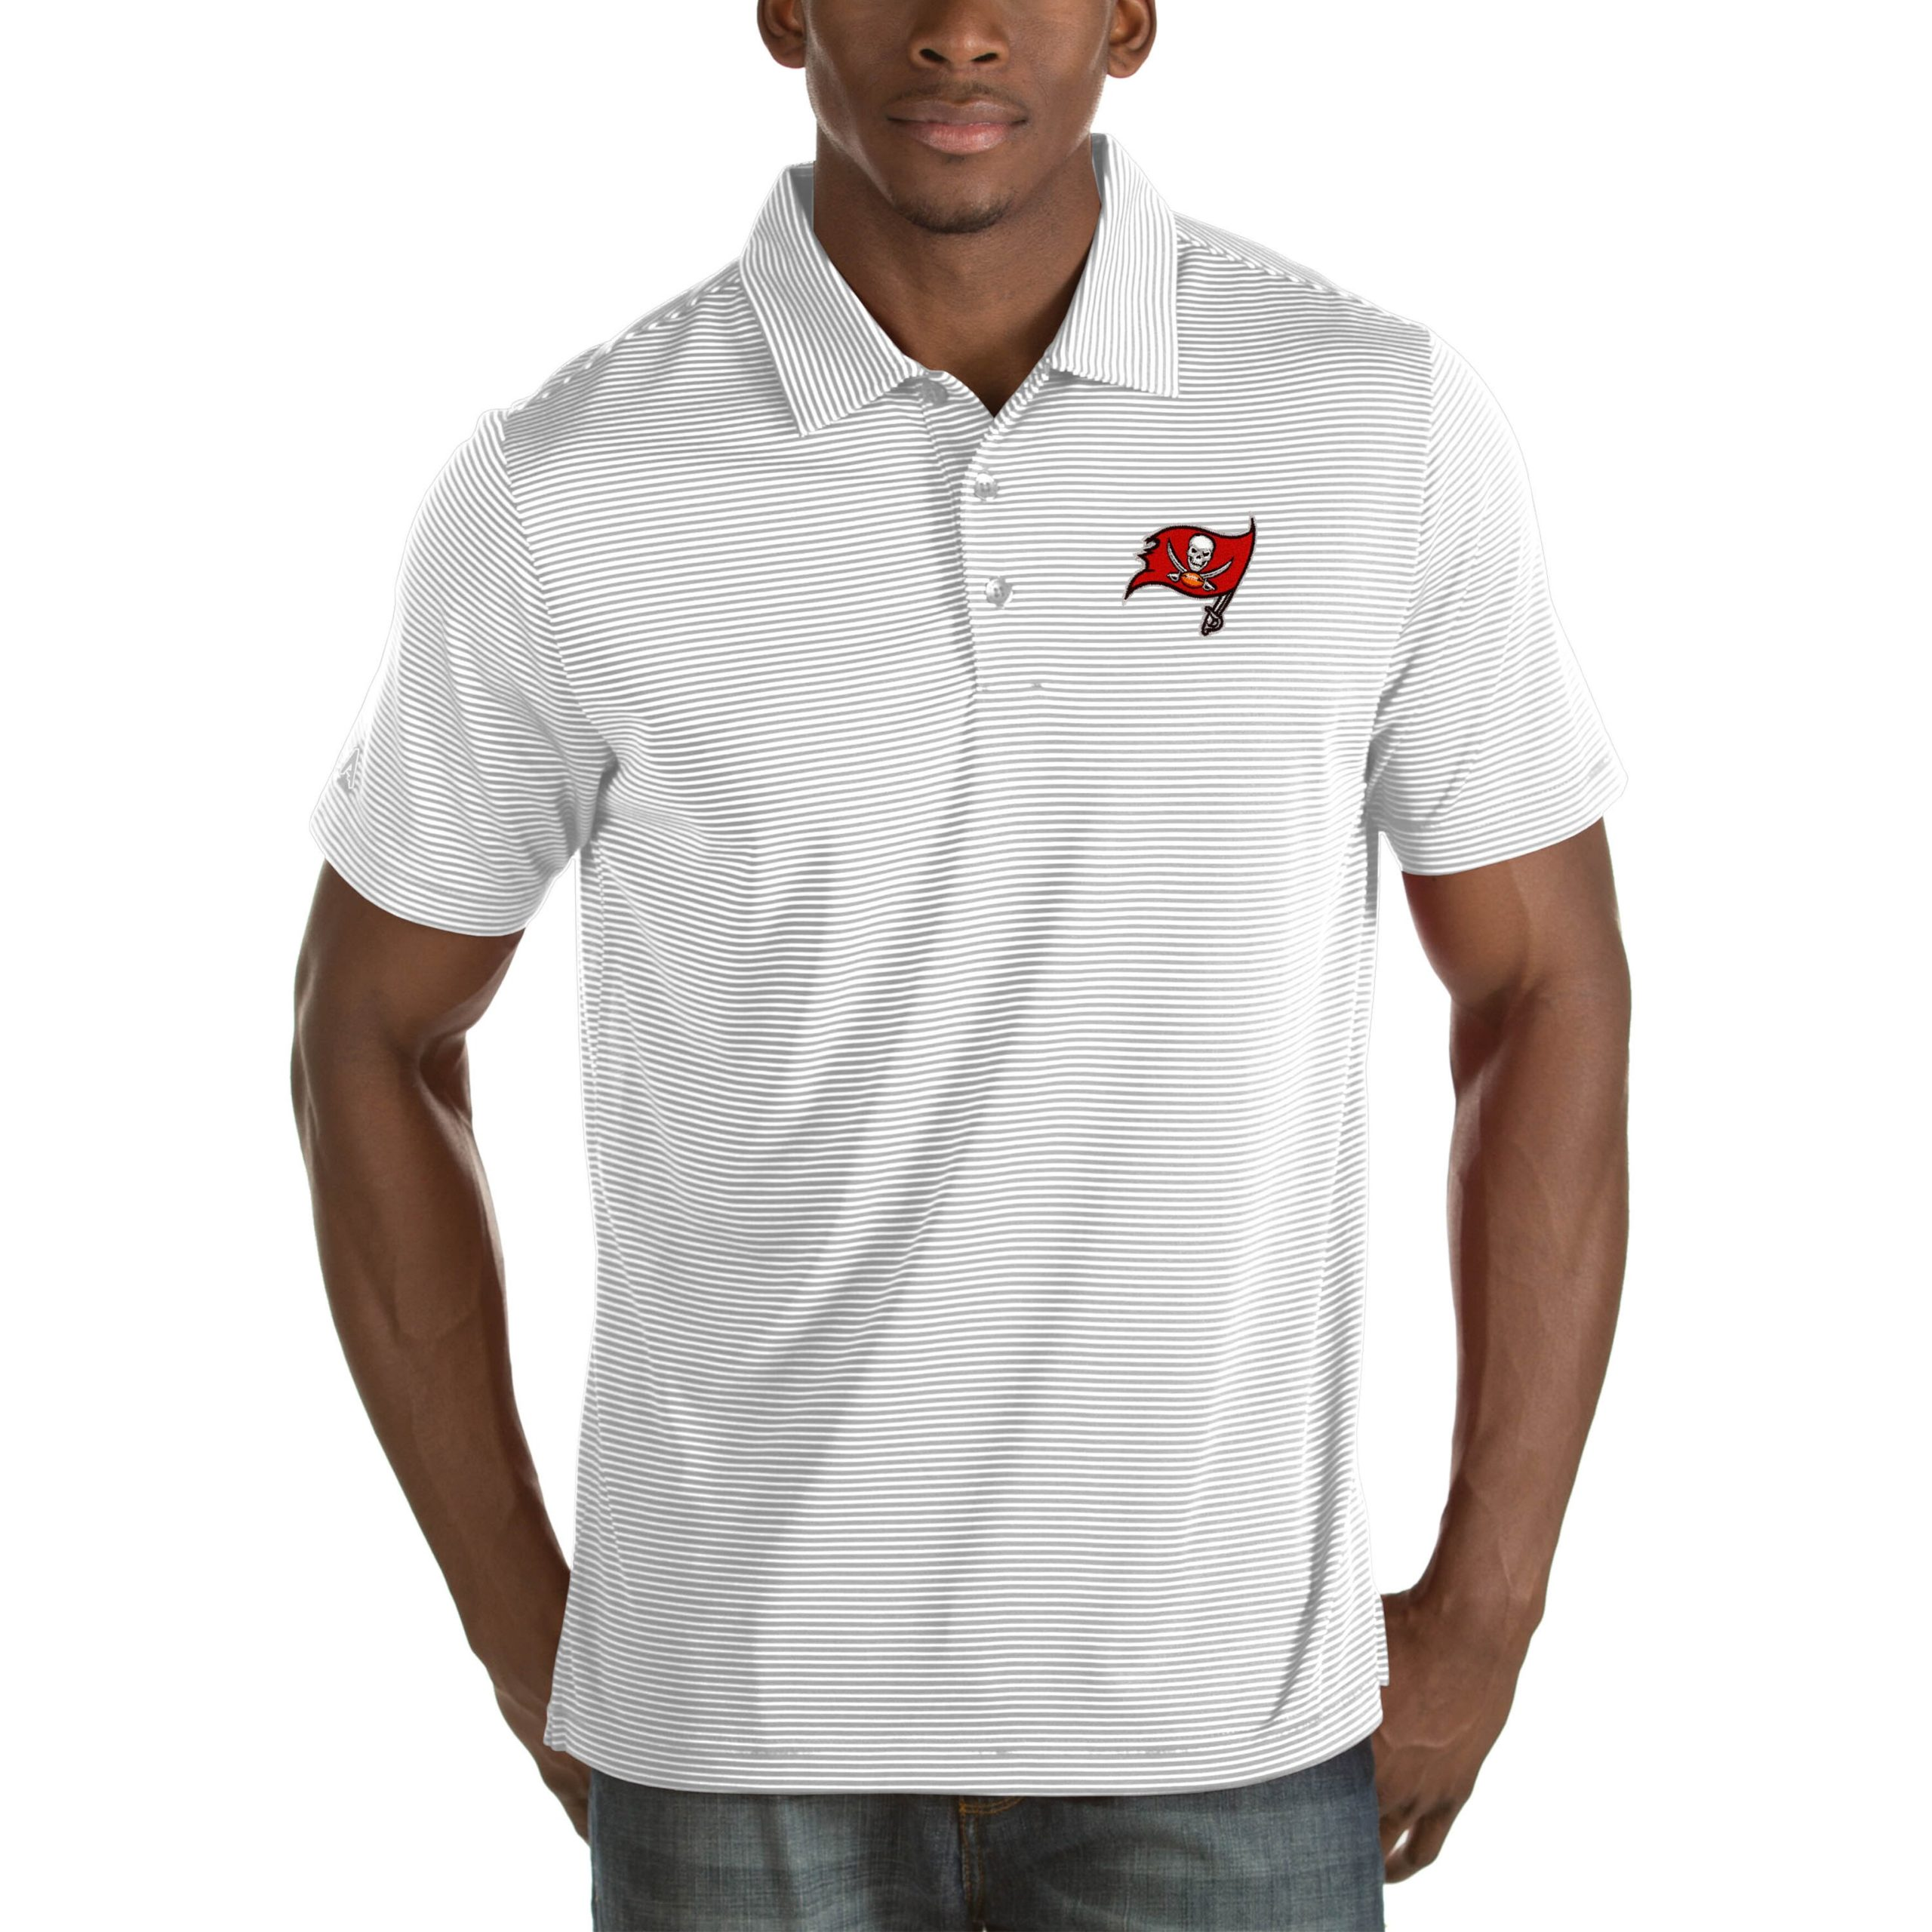 Tampa Bay Buccaneers Antigua Quest Big & Tall Polo - White